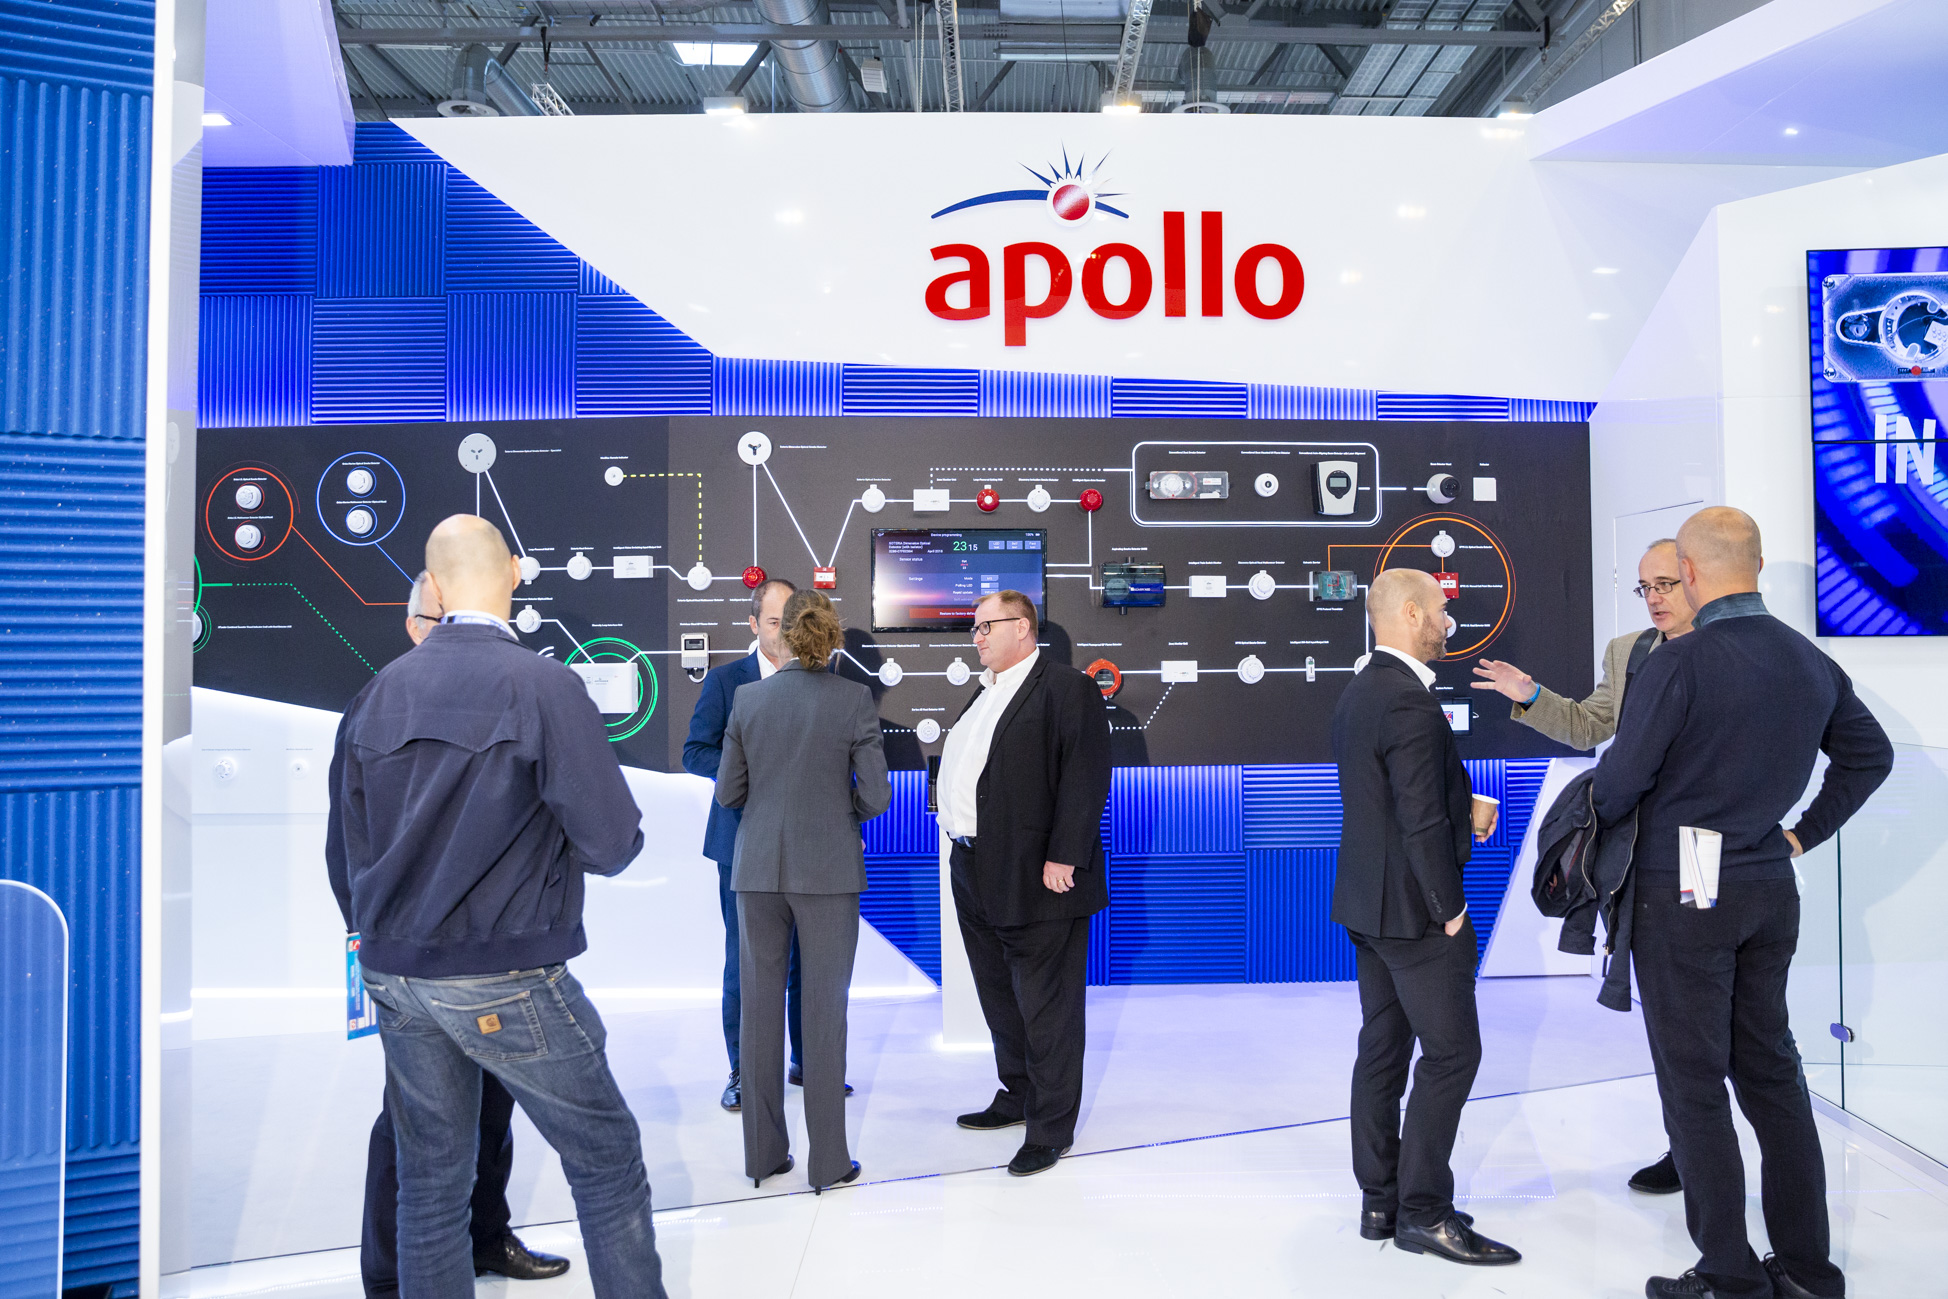 security essen: Apollo